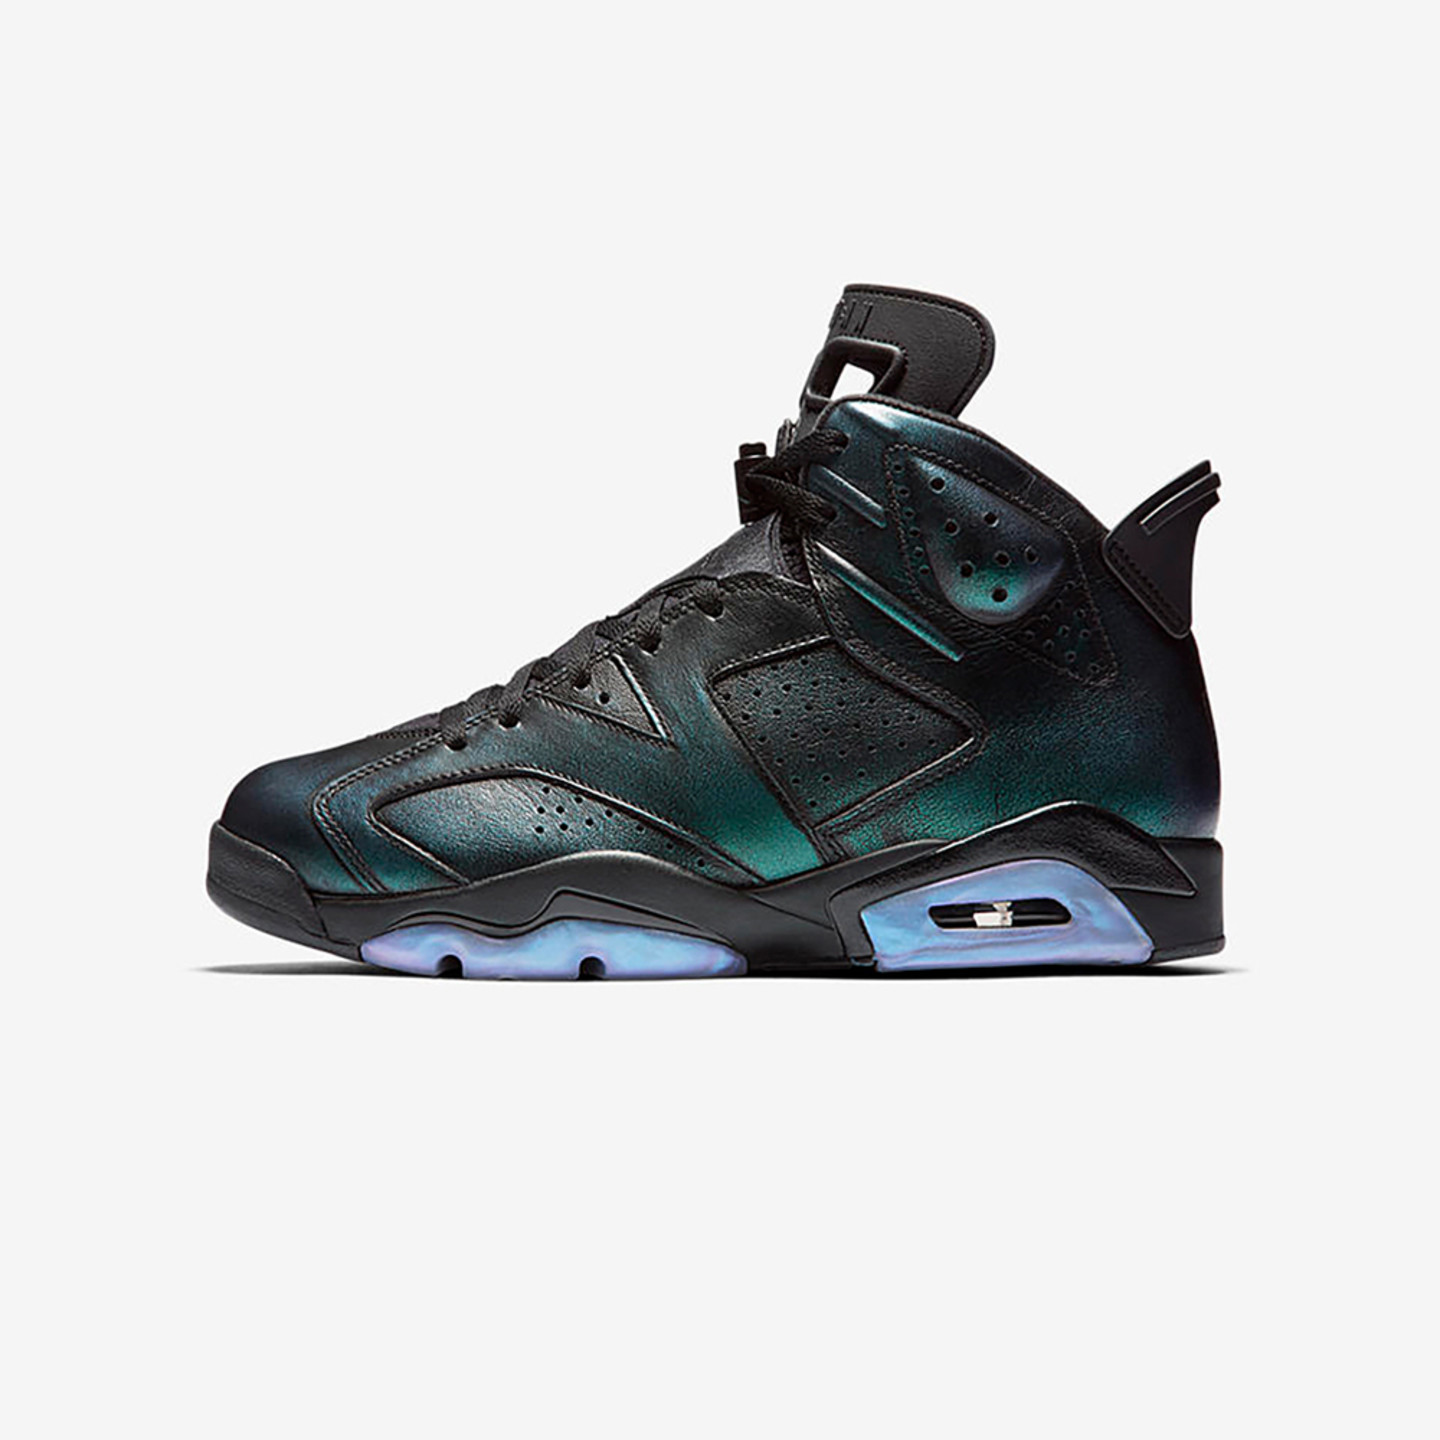 Jordan Air Jordan 6 Retro GS 'All Star' Black / Iridescent 907960-015-38